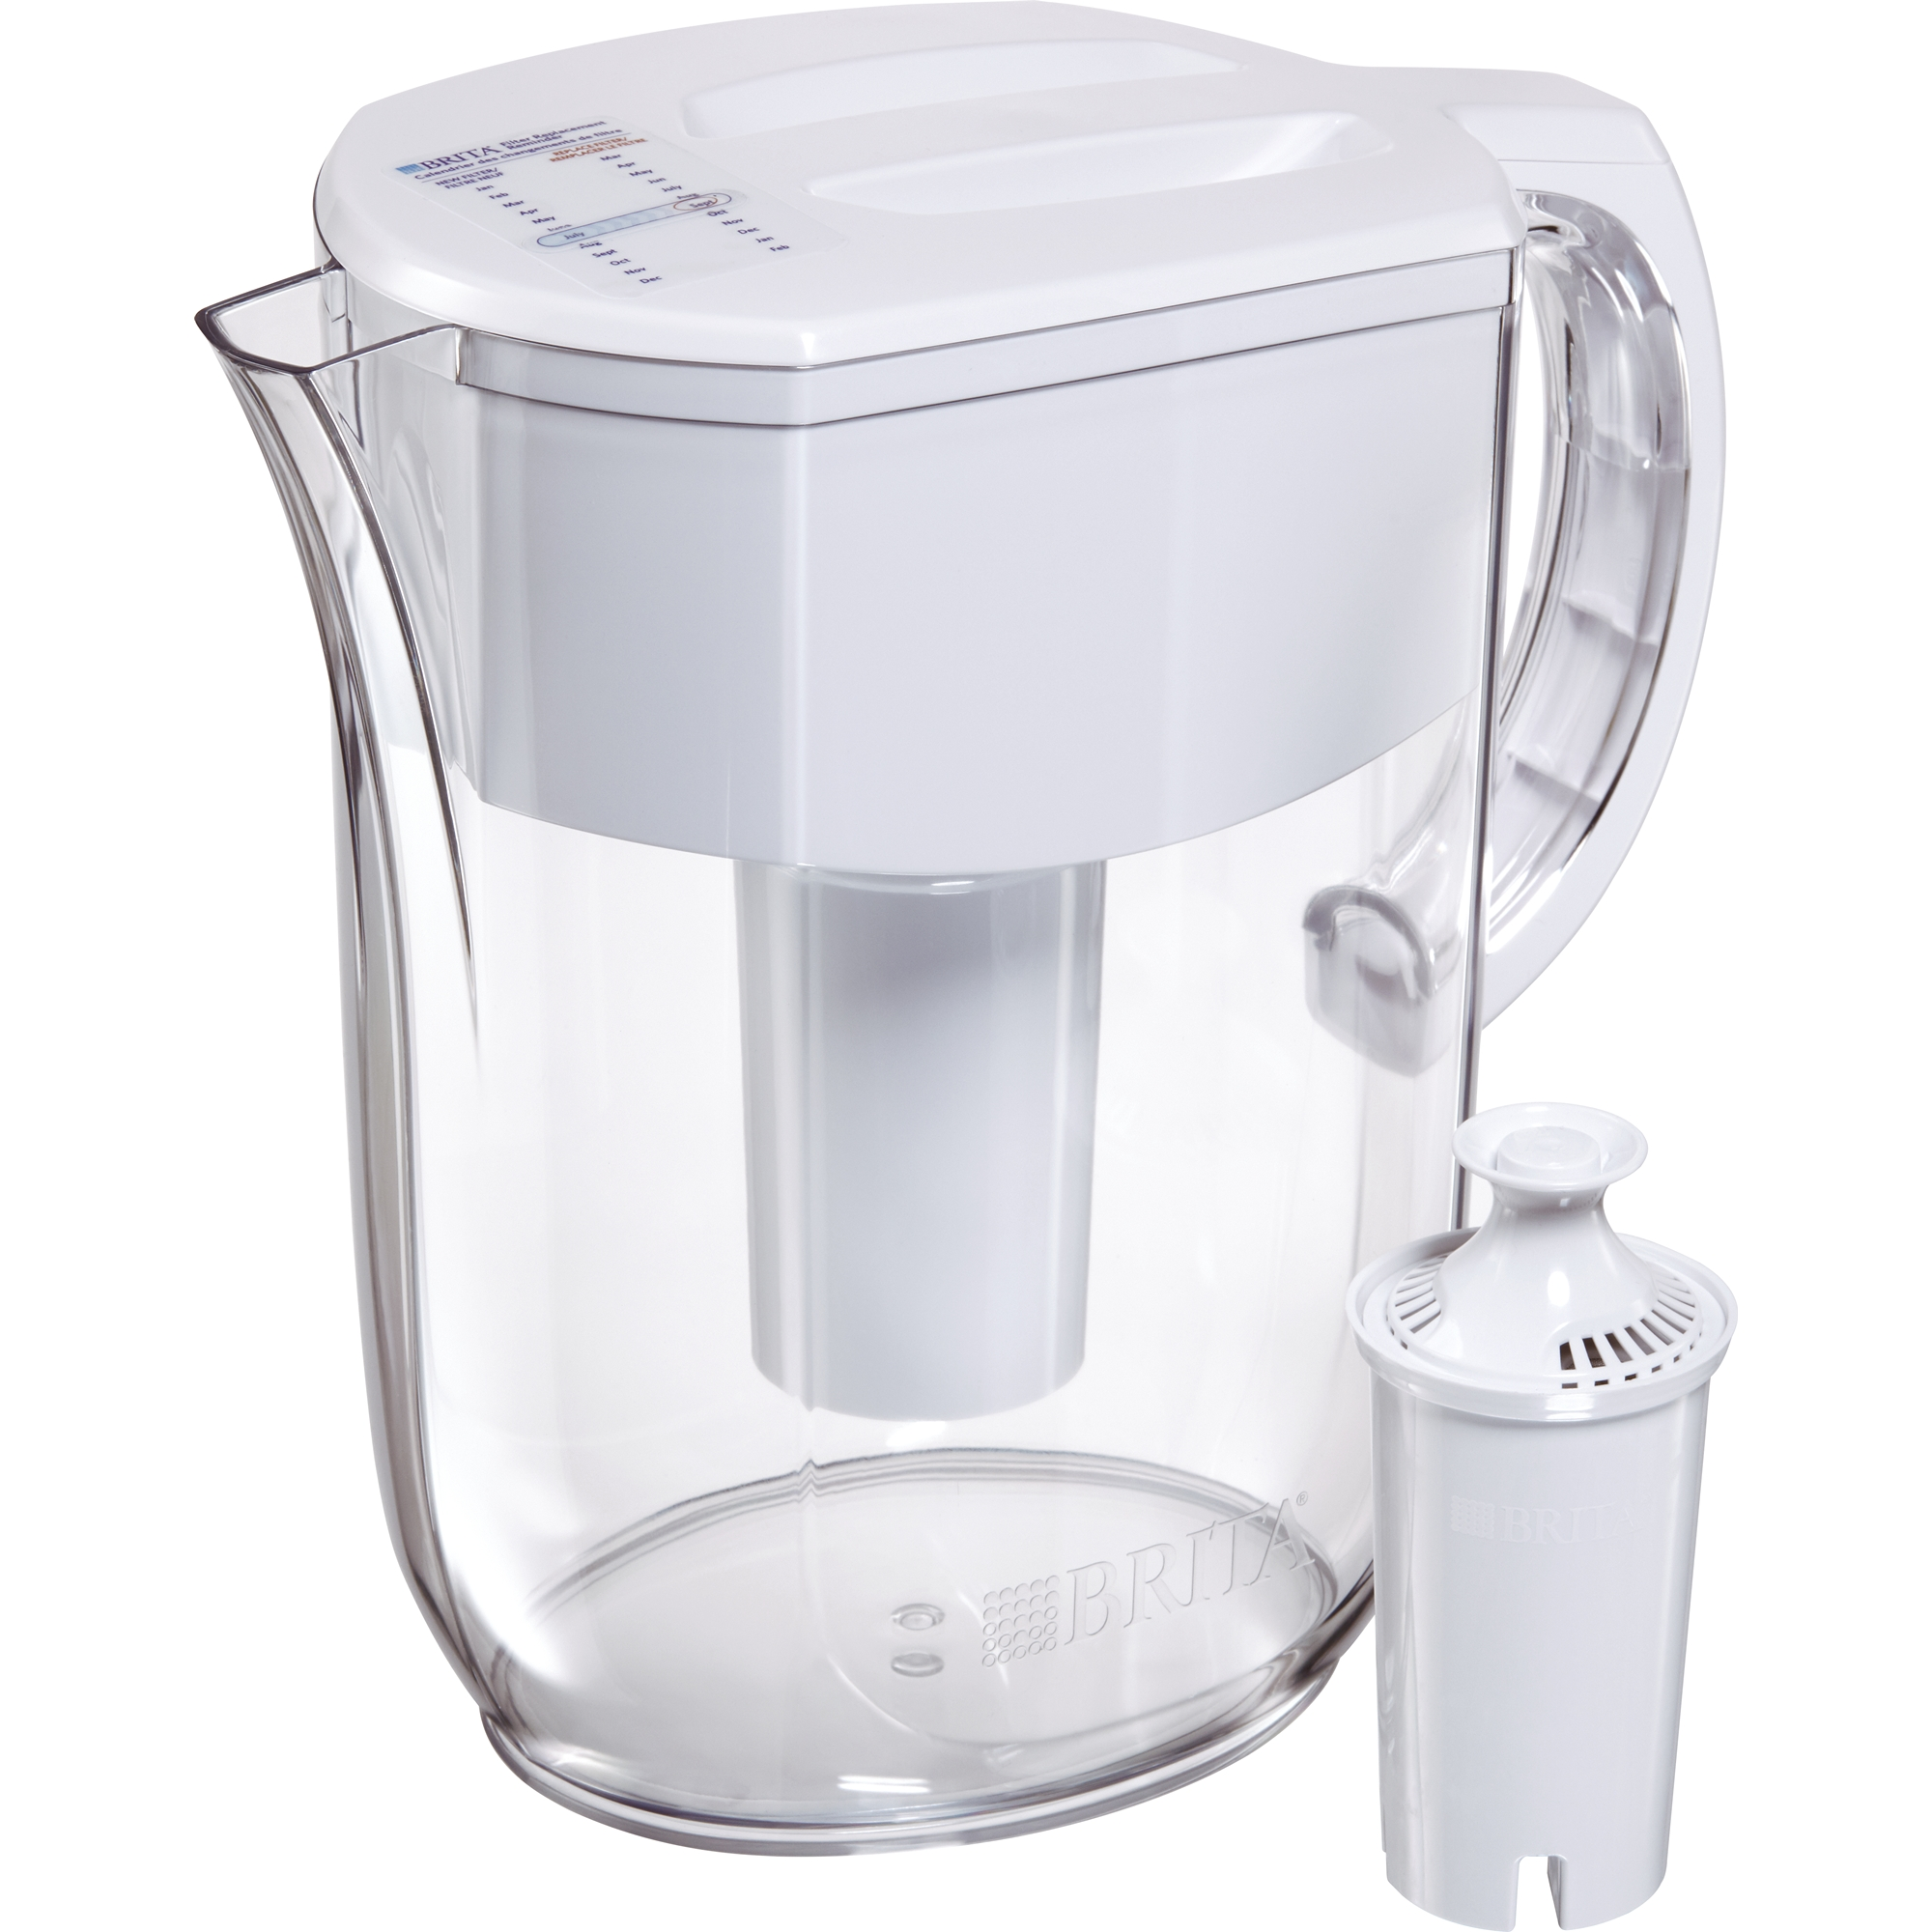 Brita Large Everyday Water Pitcher with Filter 10 Cup BPA Free